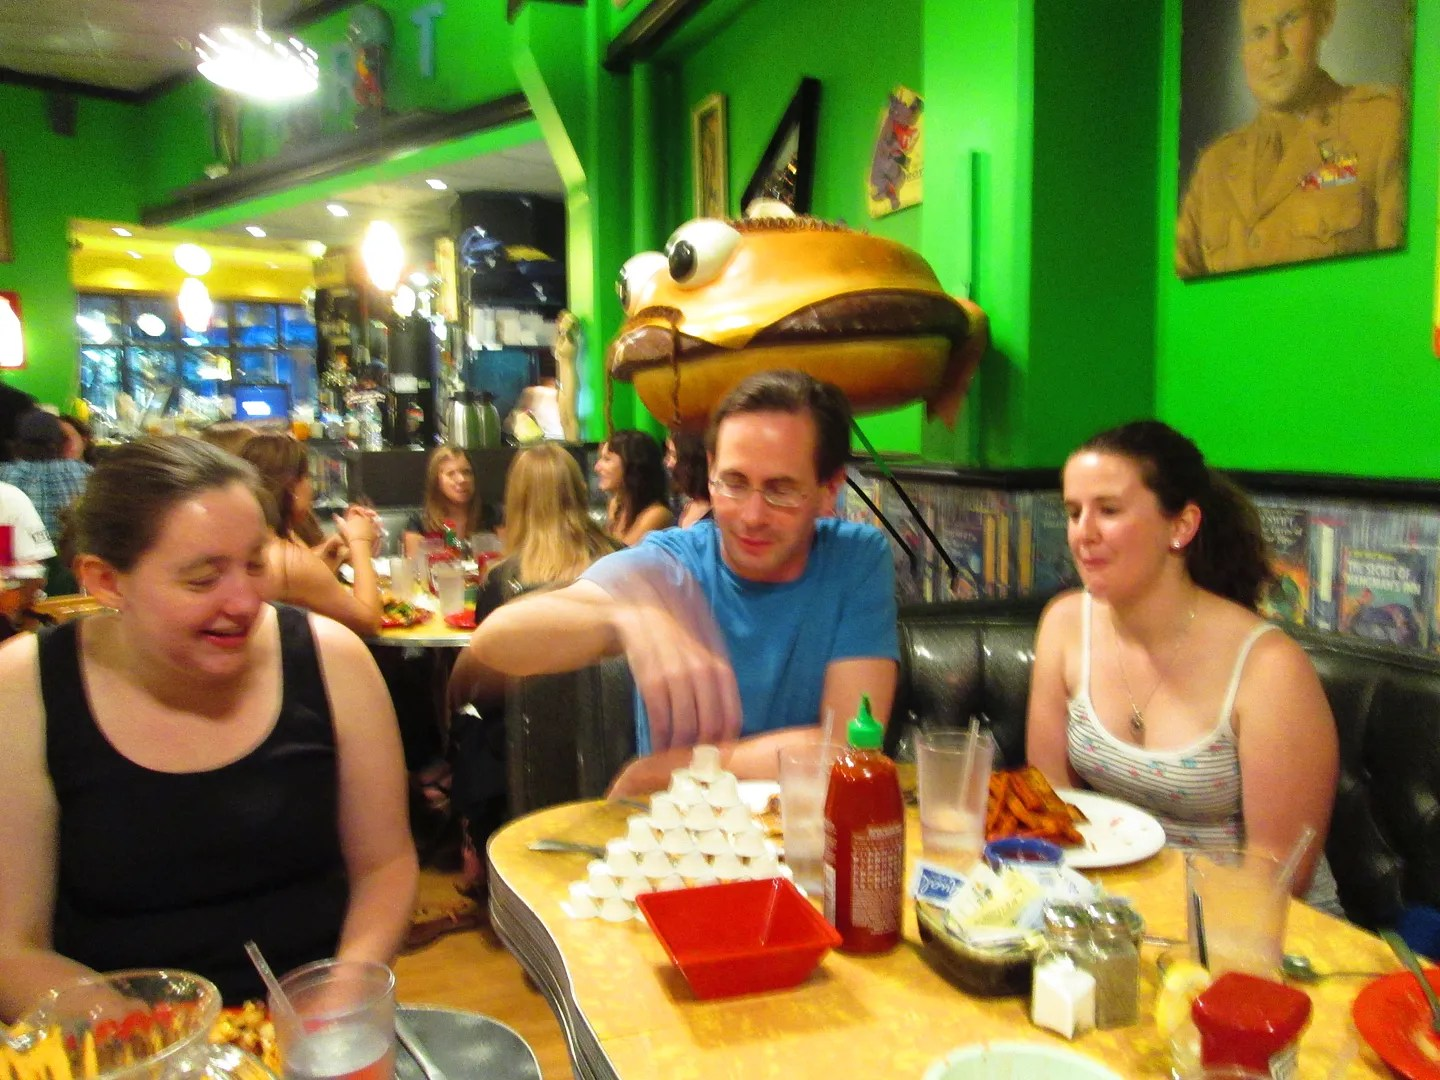 giant creepy hamburger statue in back of people eating dinner